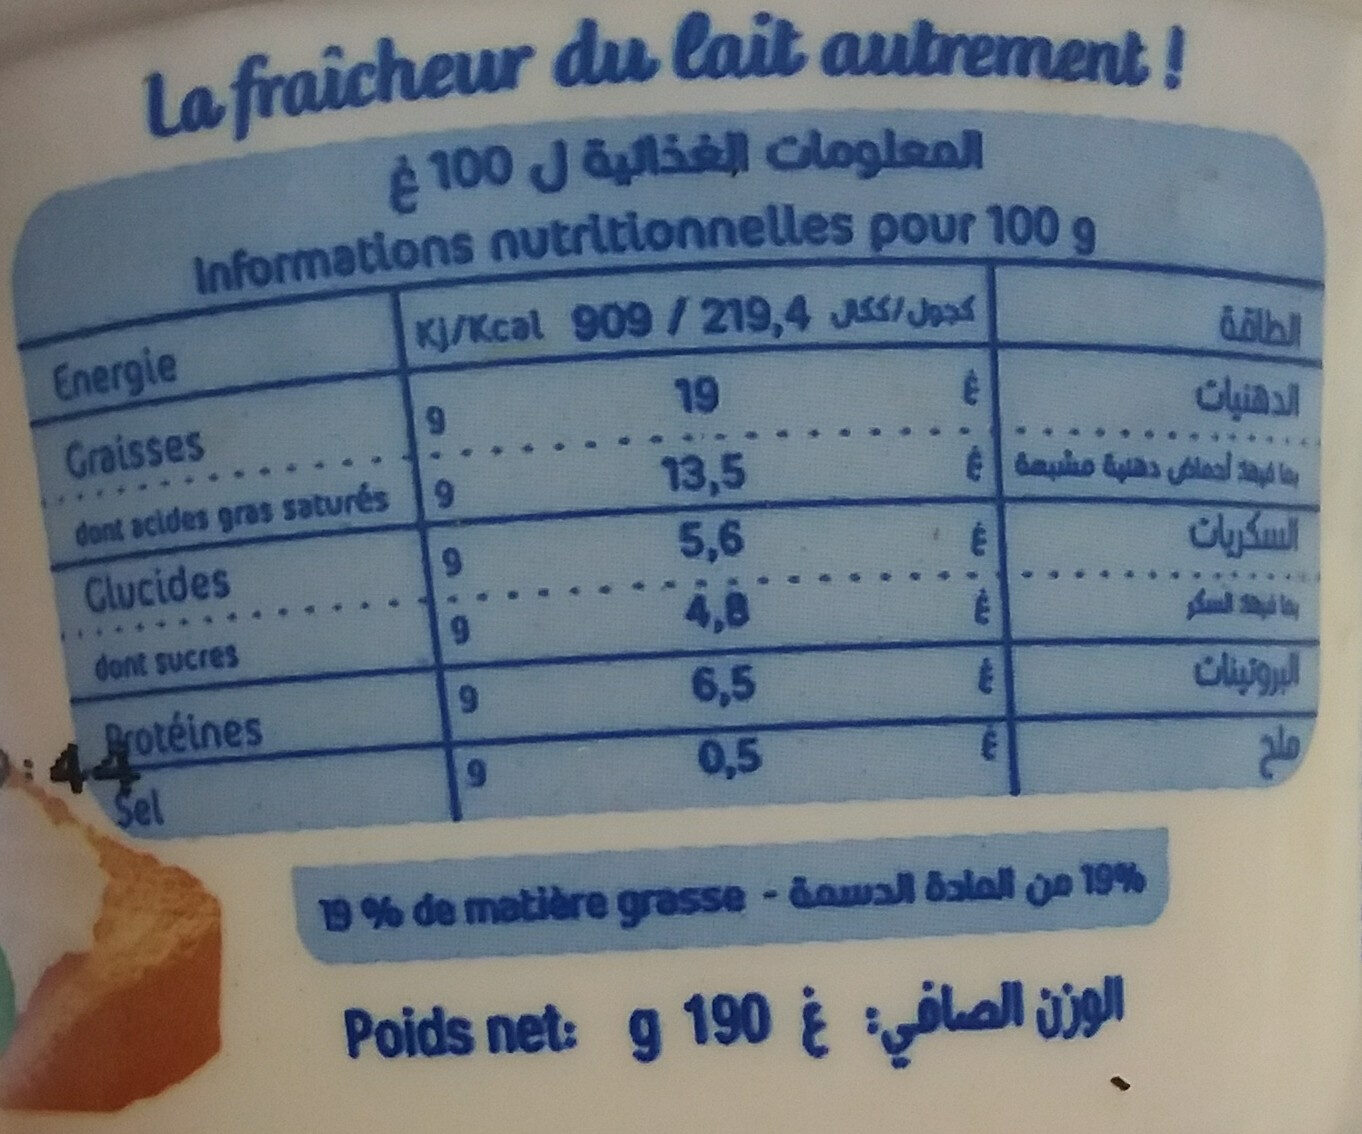 perly jben - Nutrition facts - fr